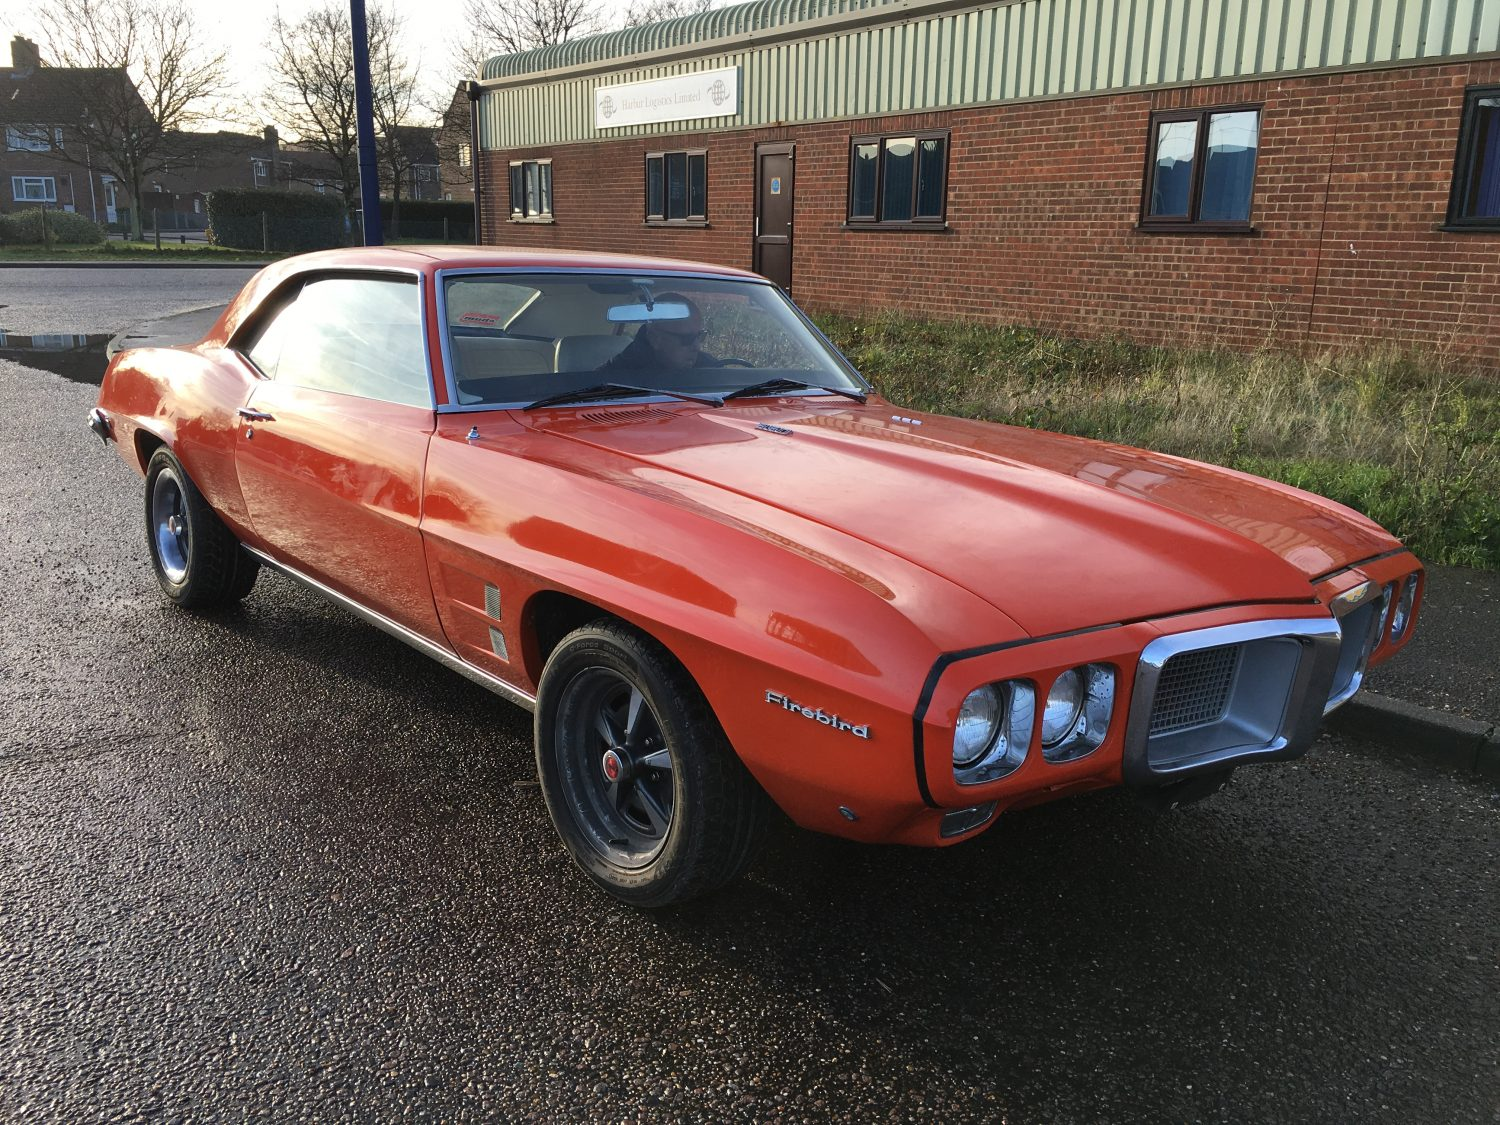 Arrived in time for Christmas: 1969 Pontiac Firebird